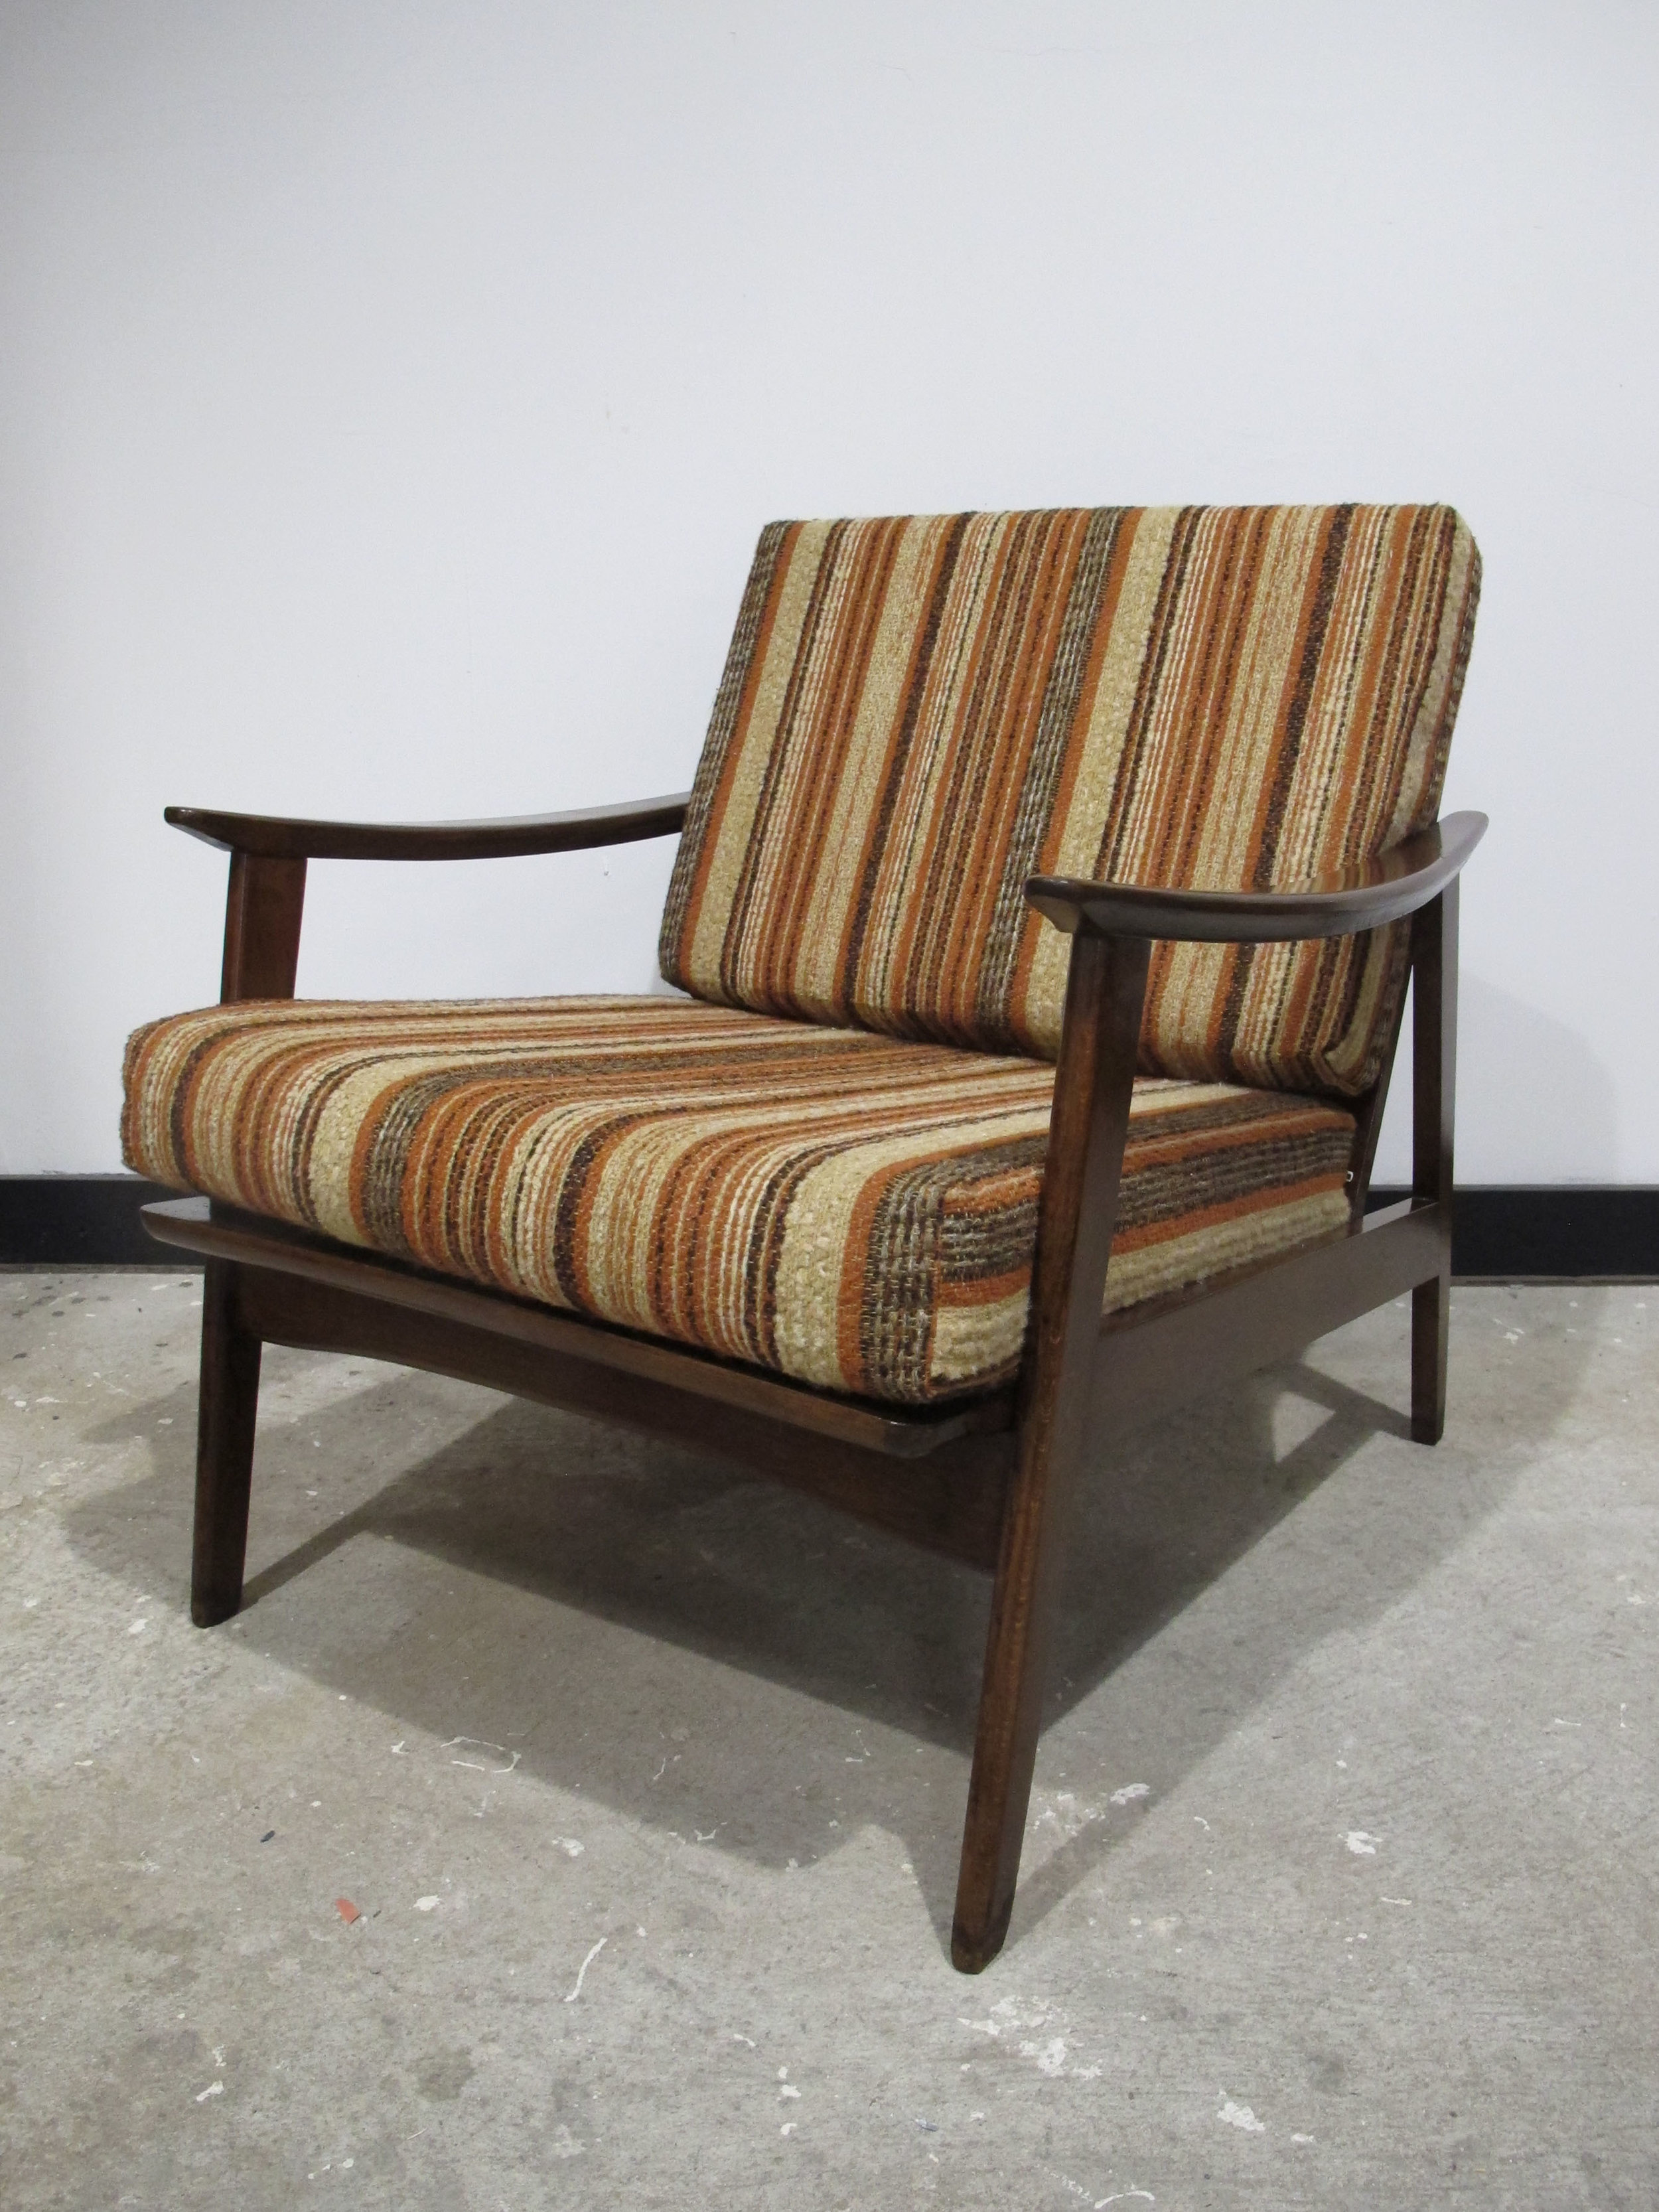 DANISH MODERN SPINDLE BACK ARMCHAIR